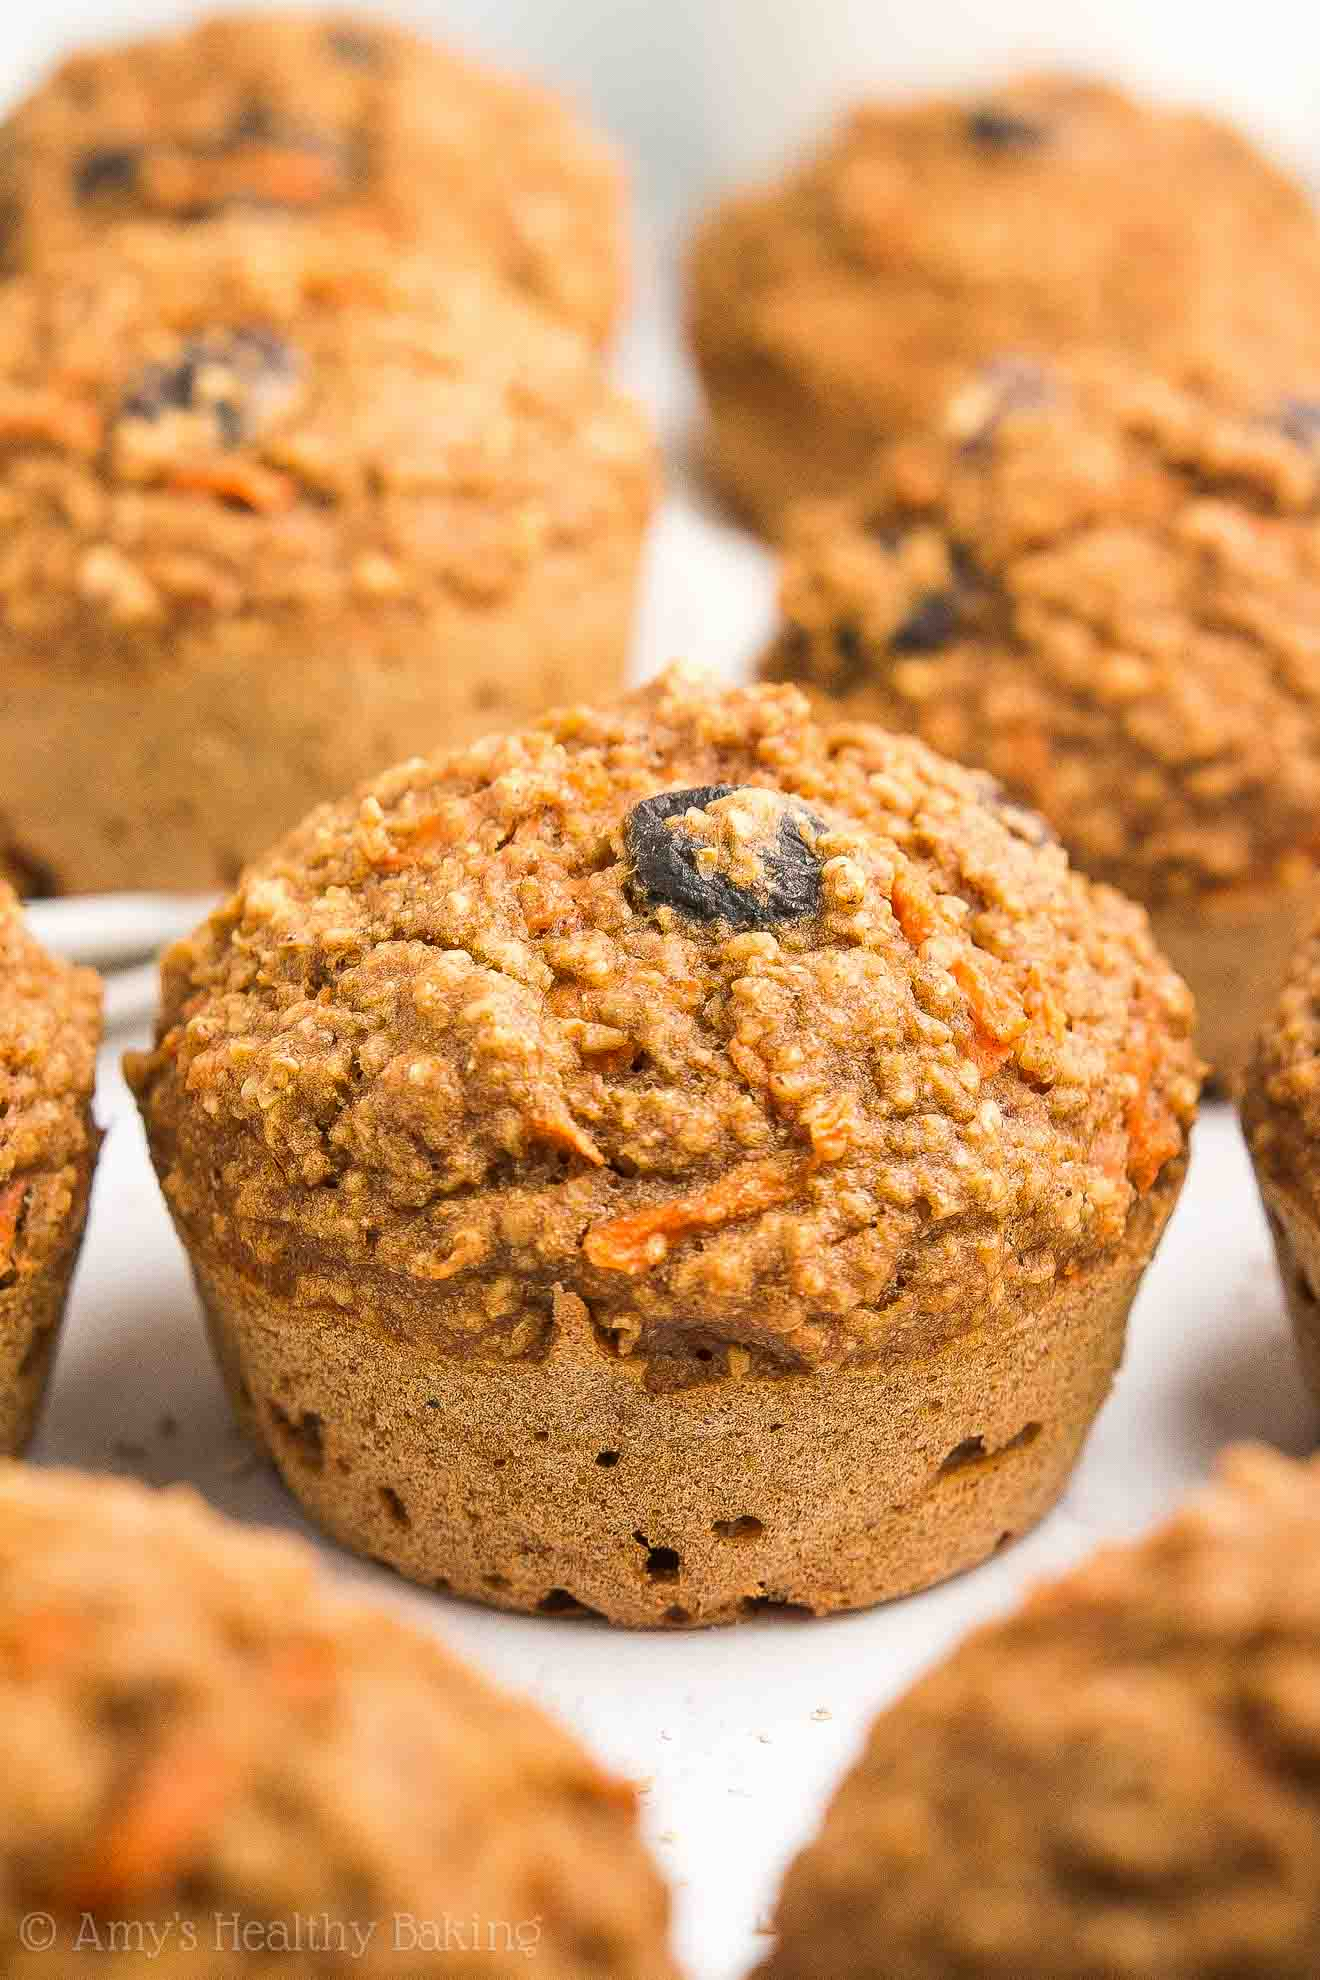 Vegan Apple Walnut Flax Muffins Recipe images